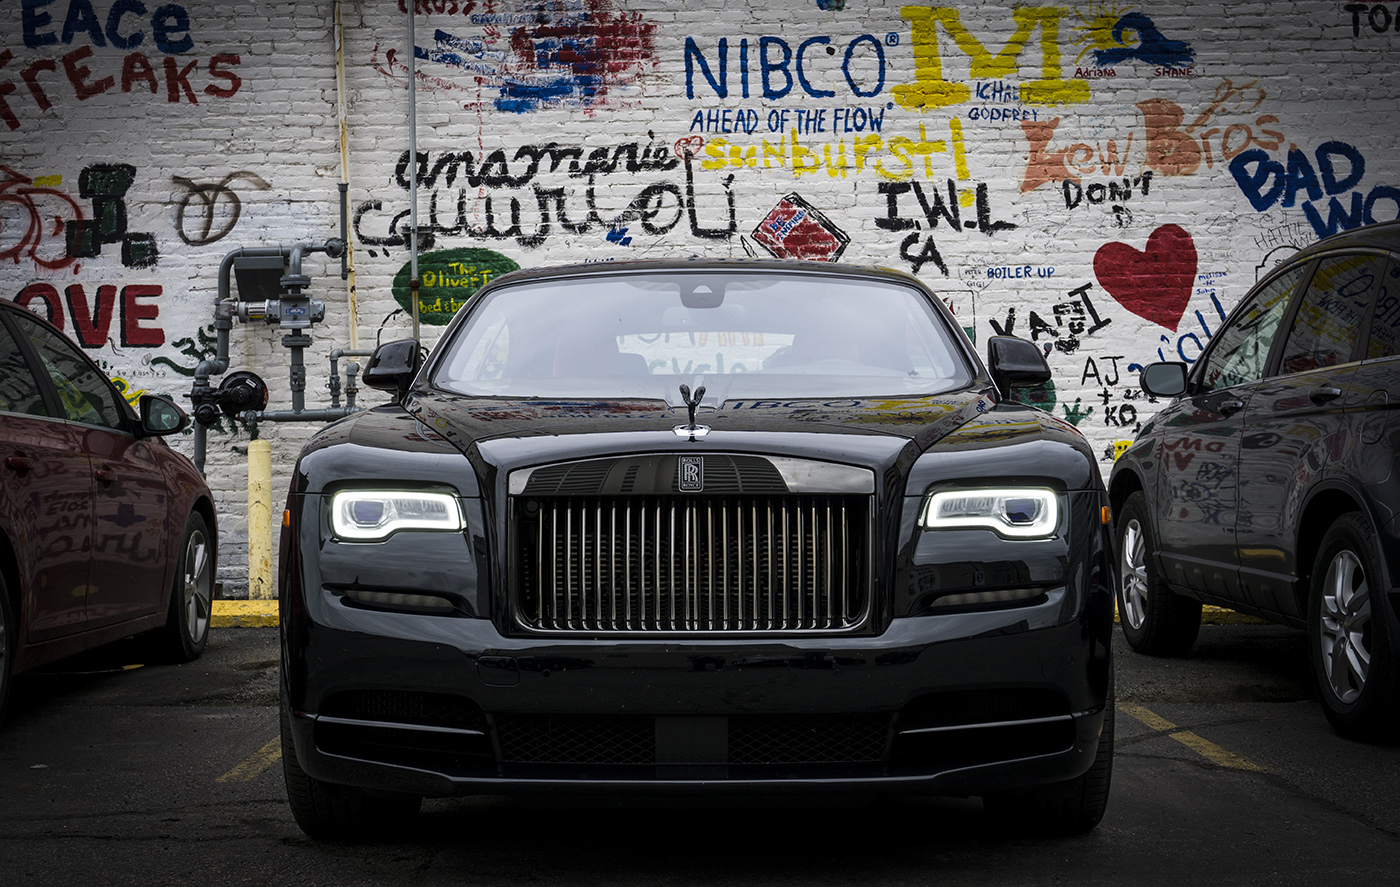 Palm Springs Ford >> The Baddest Rolls-Royce Ever. Wraith Black Badge. | Rides ...